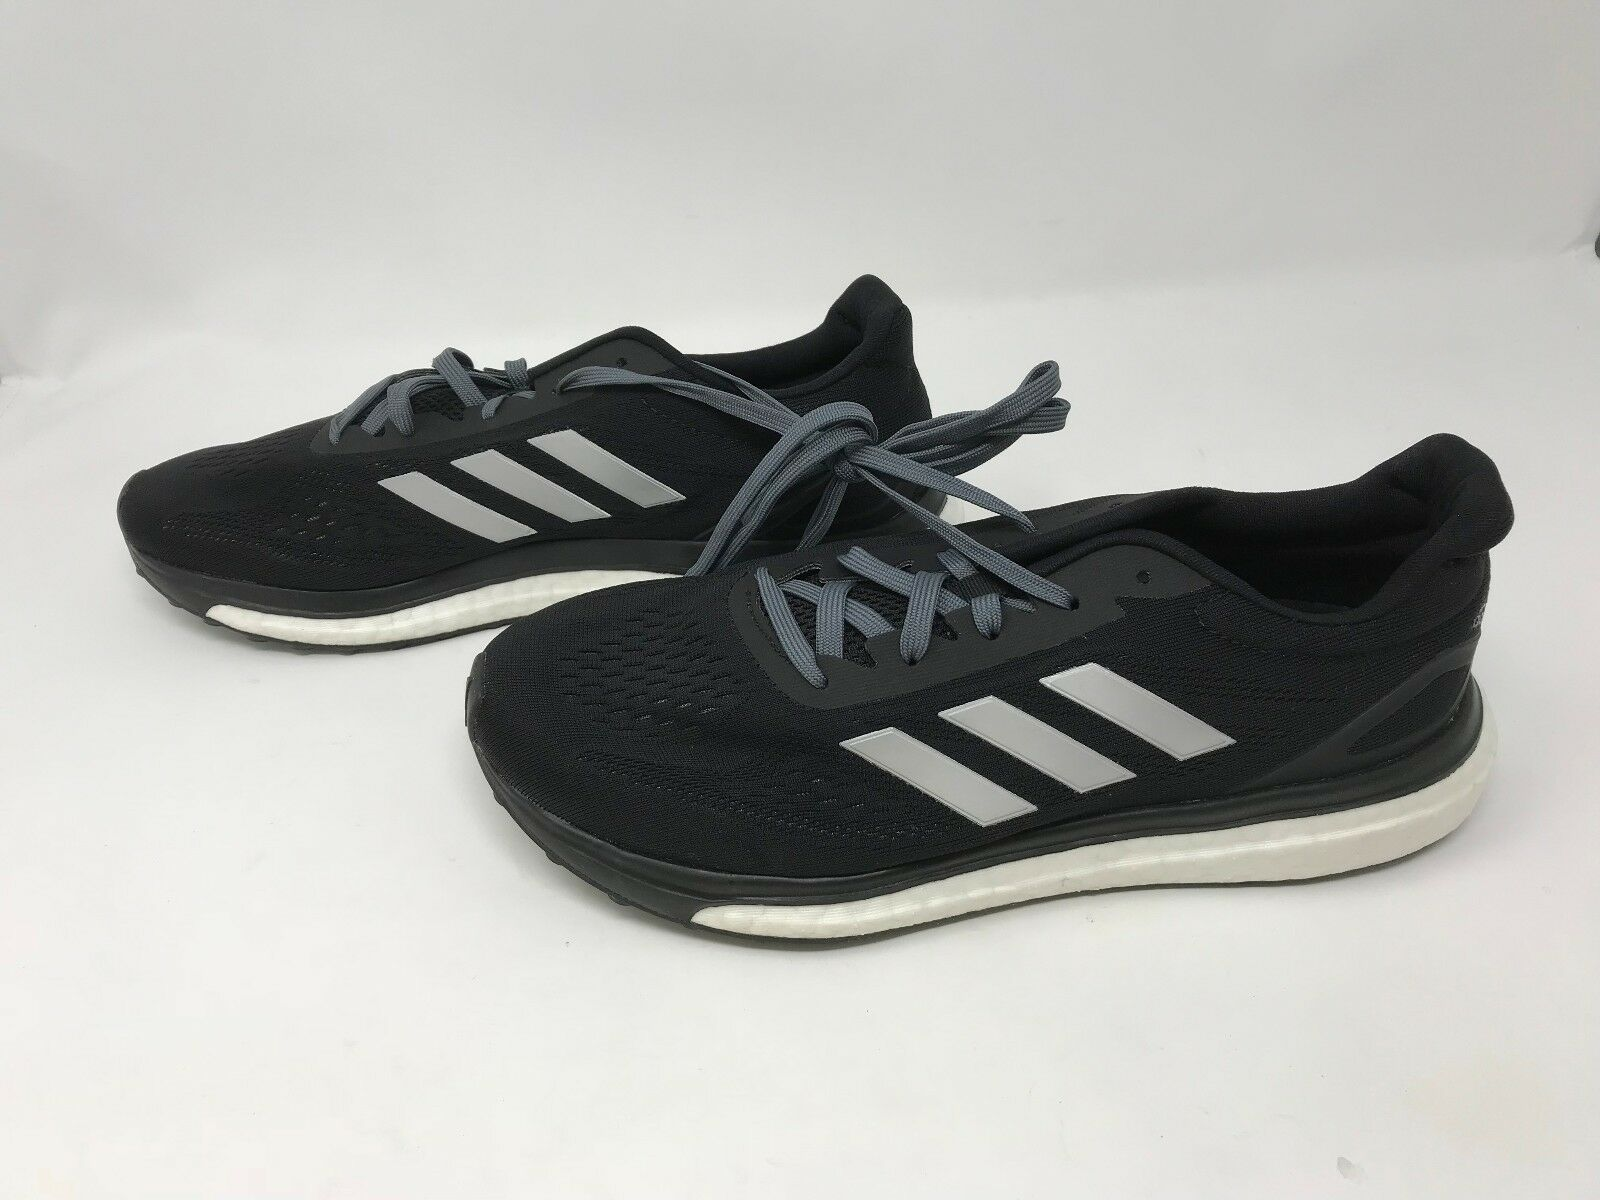 Womens Adidas Price reduction SONIC DRIVE Running Shoes         17K